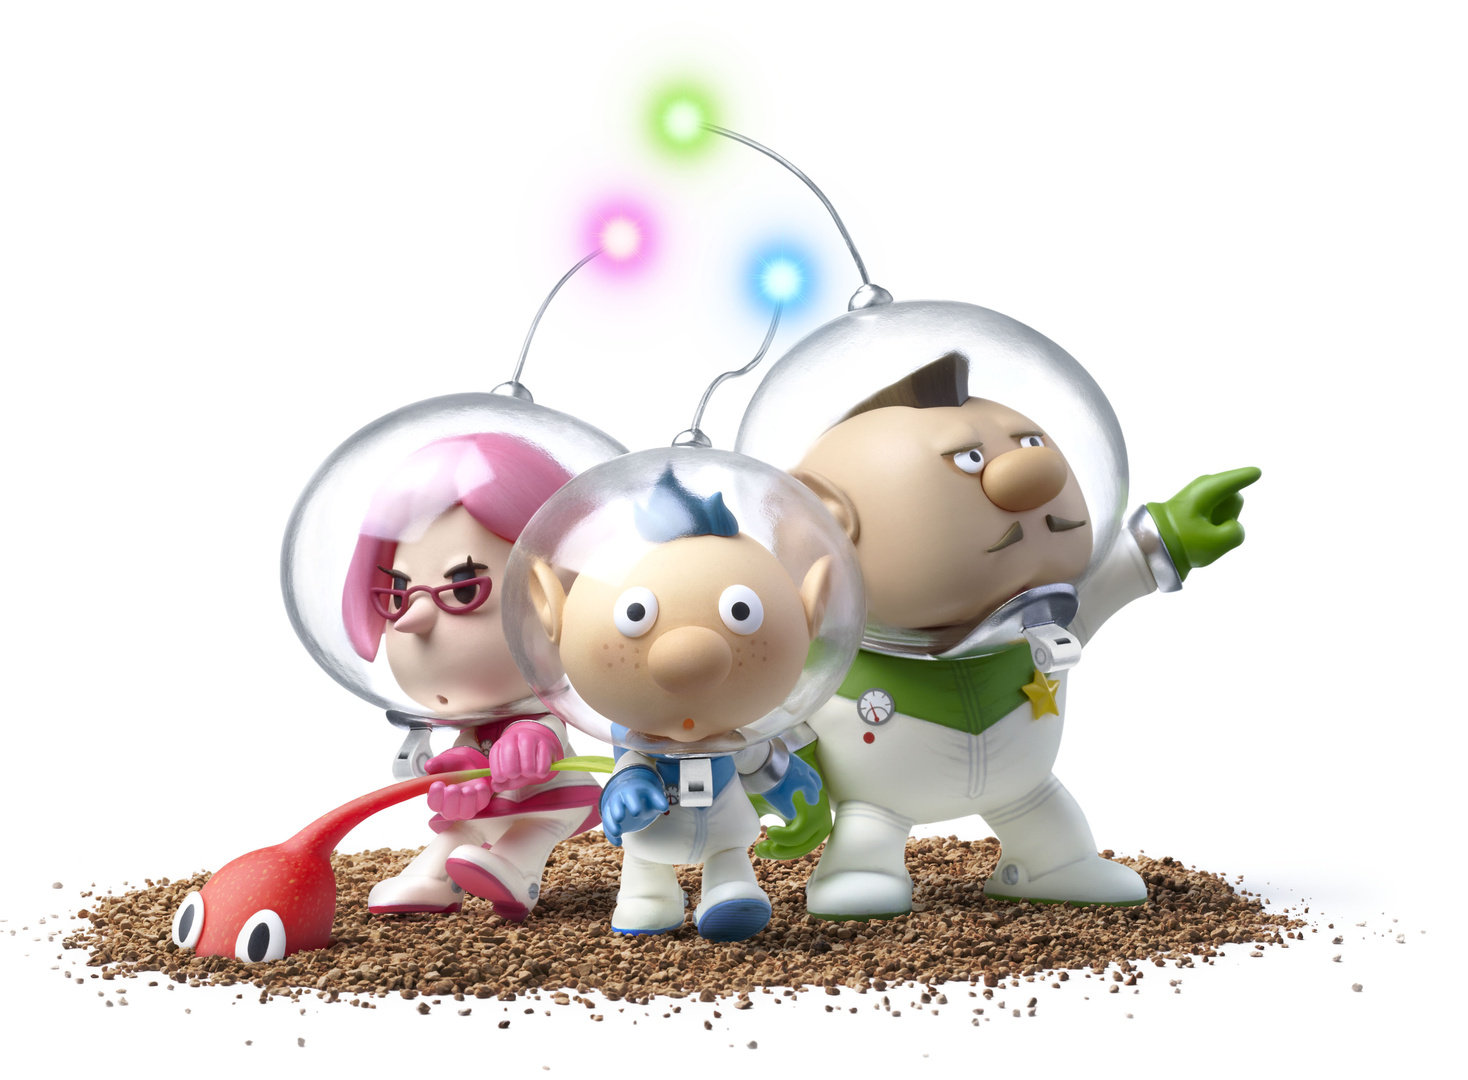 http://static3.wikia.nocookie.net/__cb20130611232815/pikmin/images/7/74/Captains_Pikmin_3.jpg